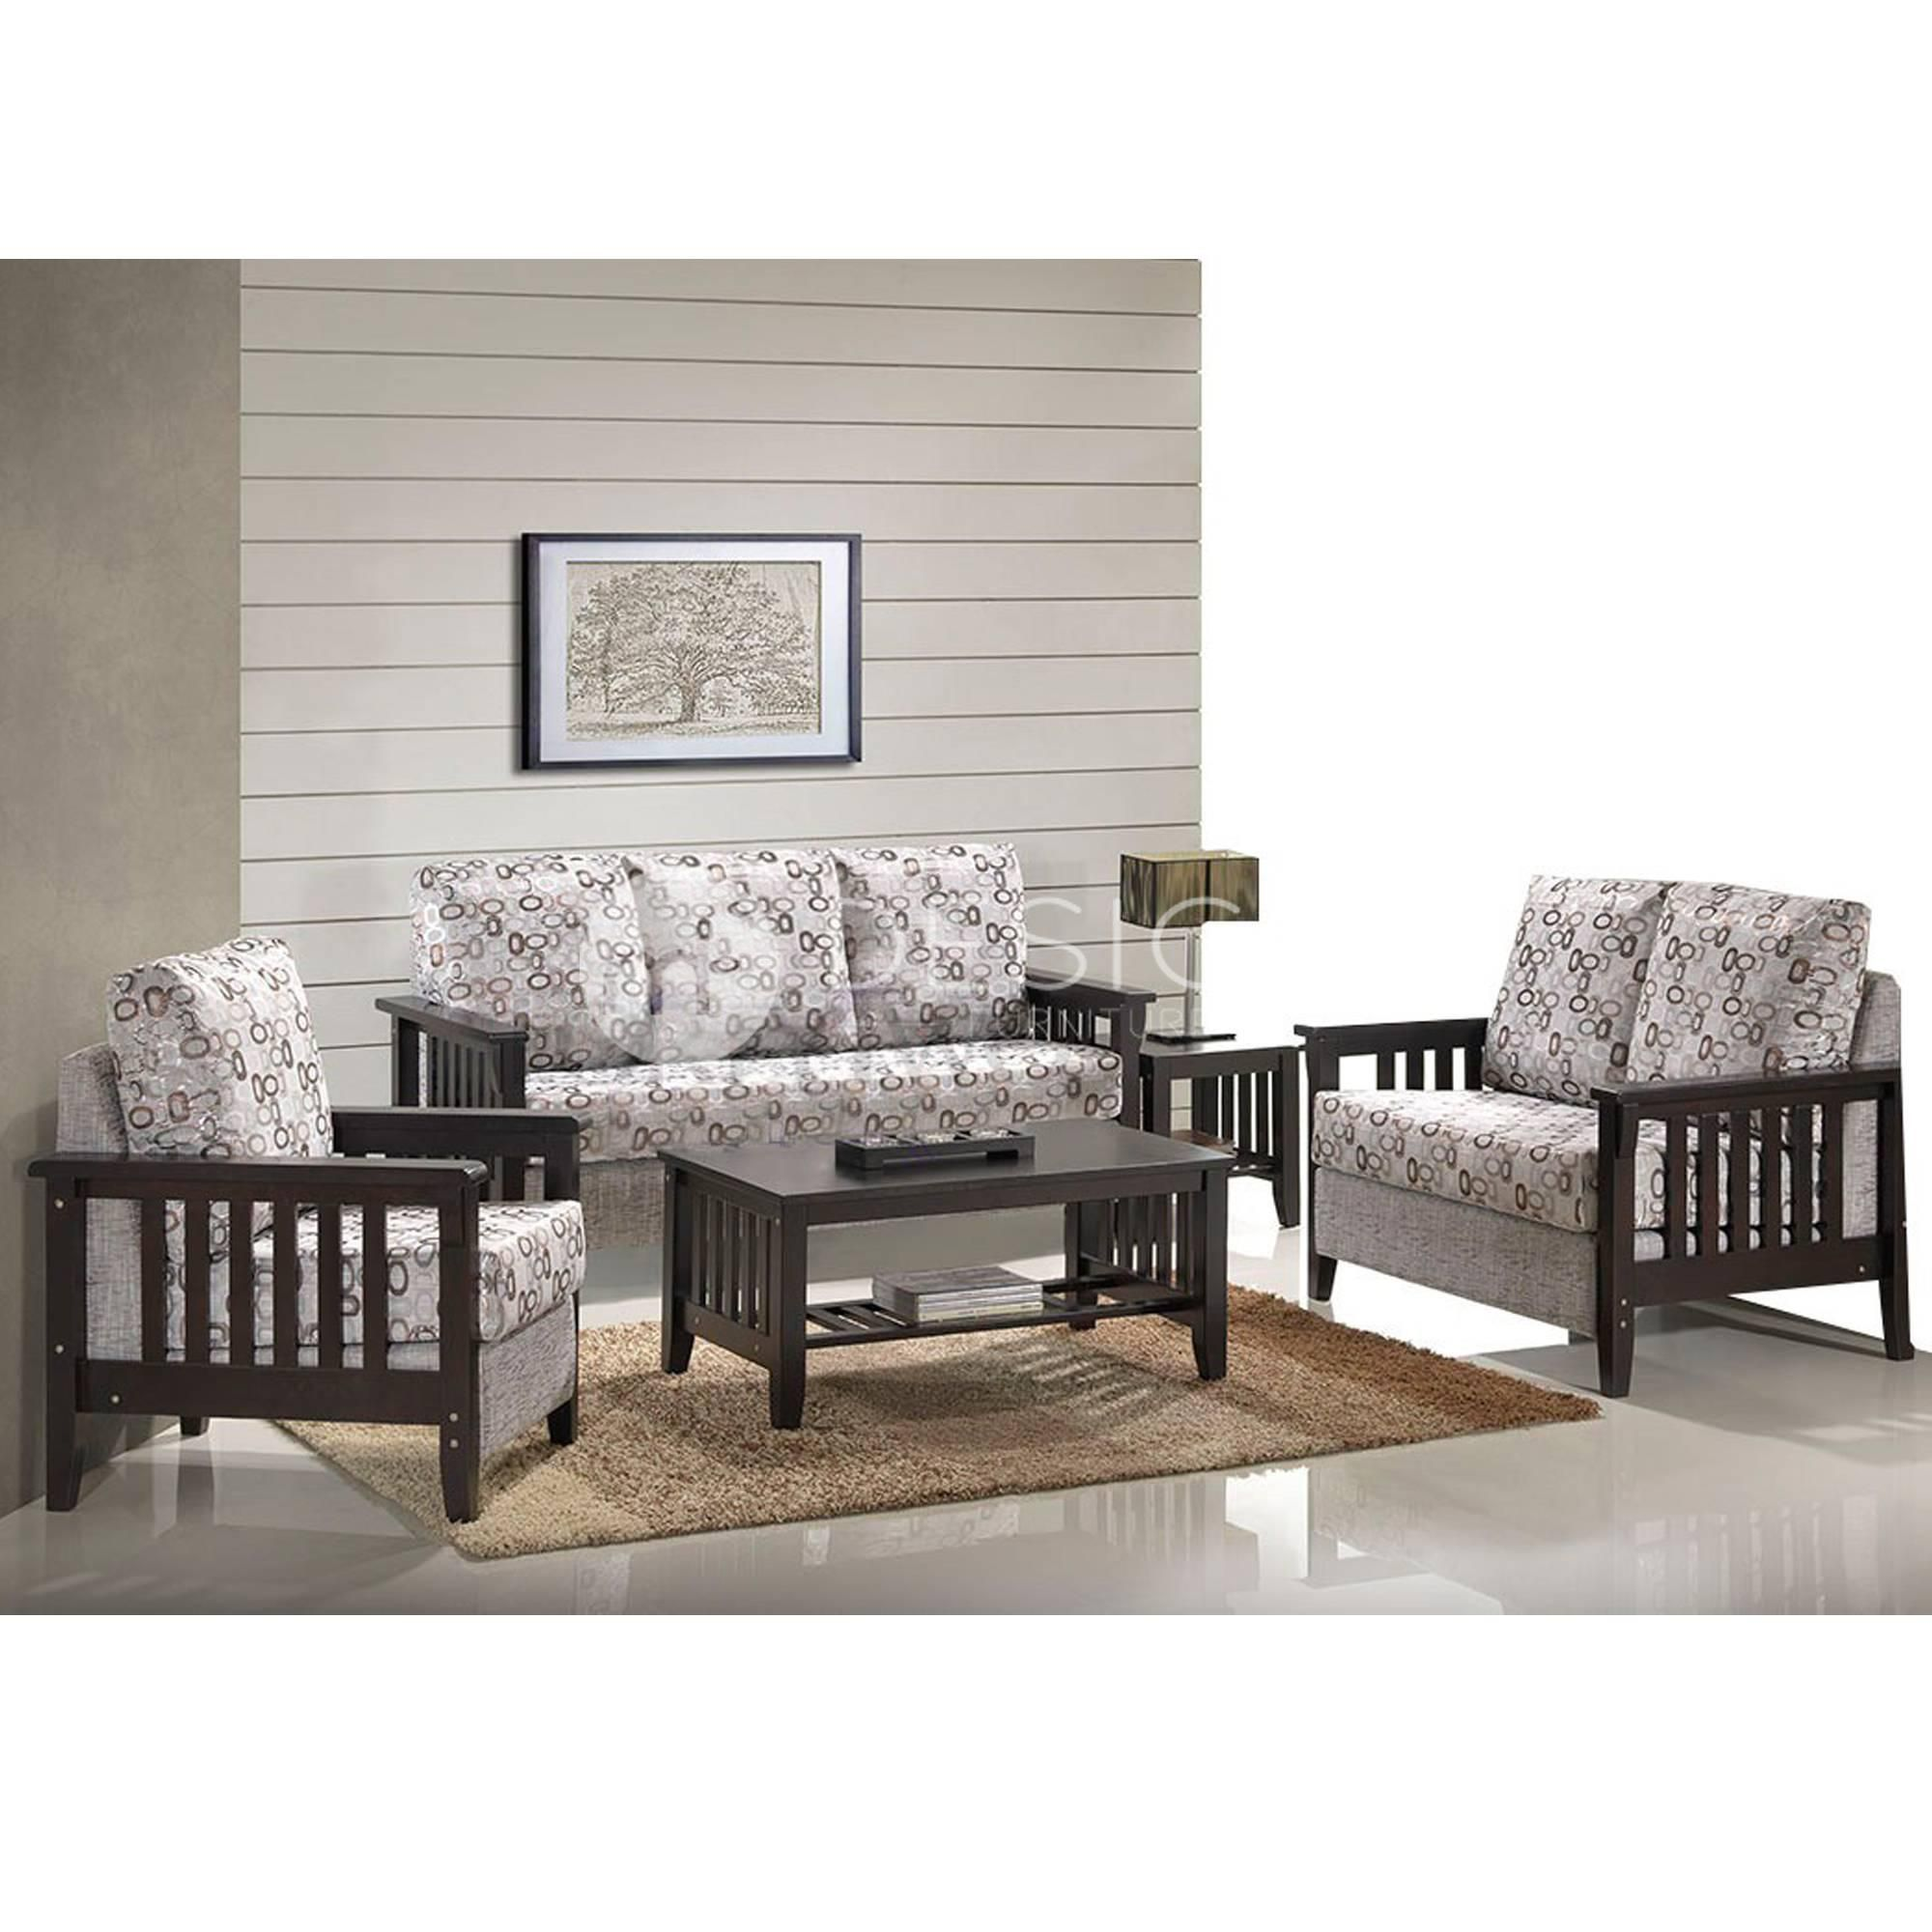 ZACHARY ANTIQUE 1 2 3 SOFA SET